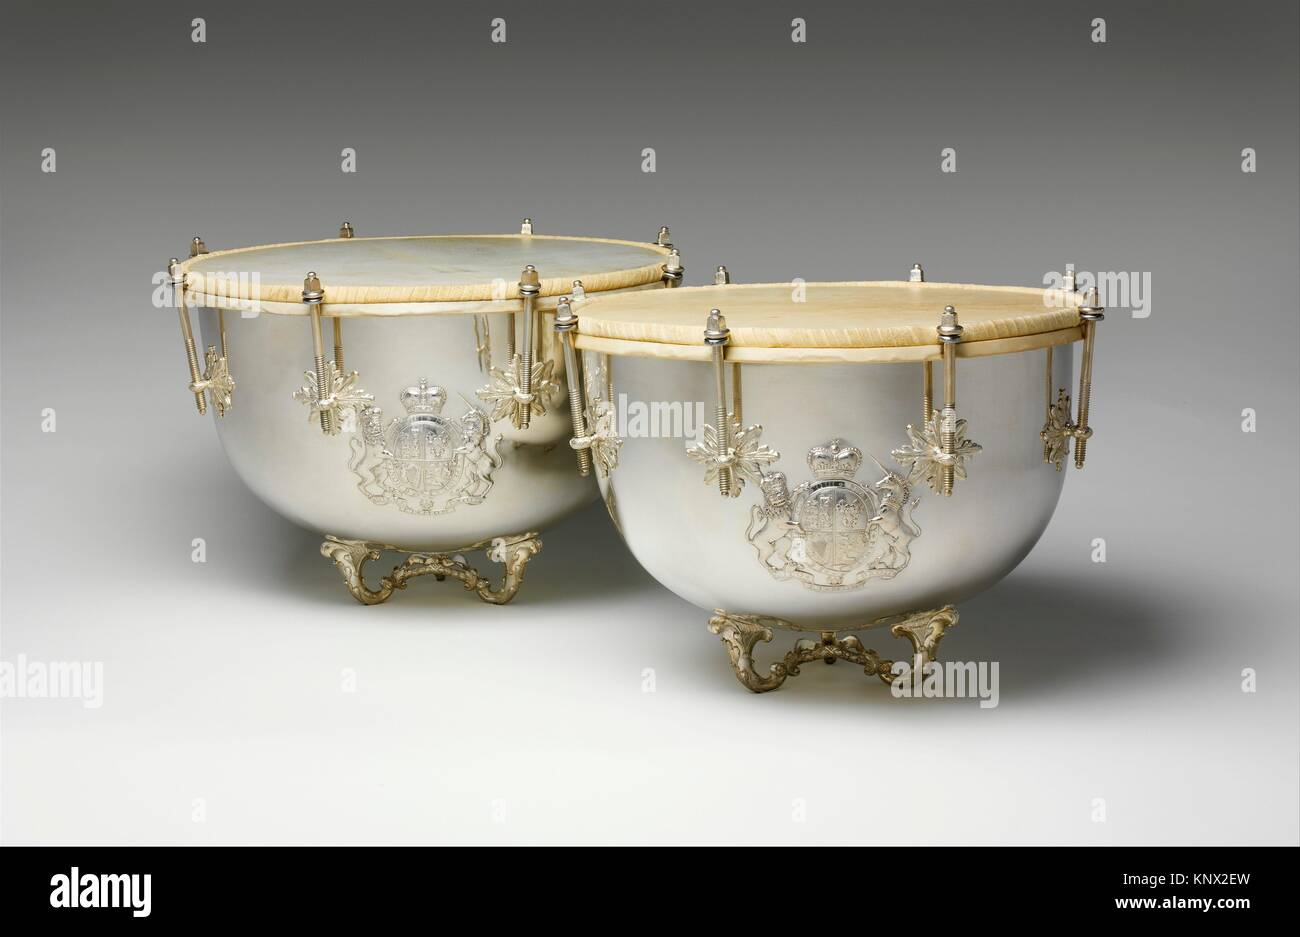 Kettle Drums. Maker: Franz Peter Bunsen (ca. 1725-1795 (master 1754)); Date: 1779; Geography: Hanover, Germany; - Stock Image